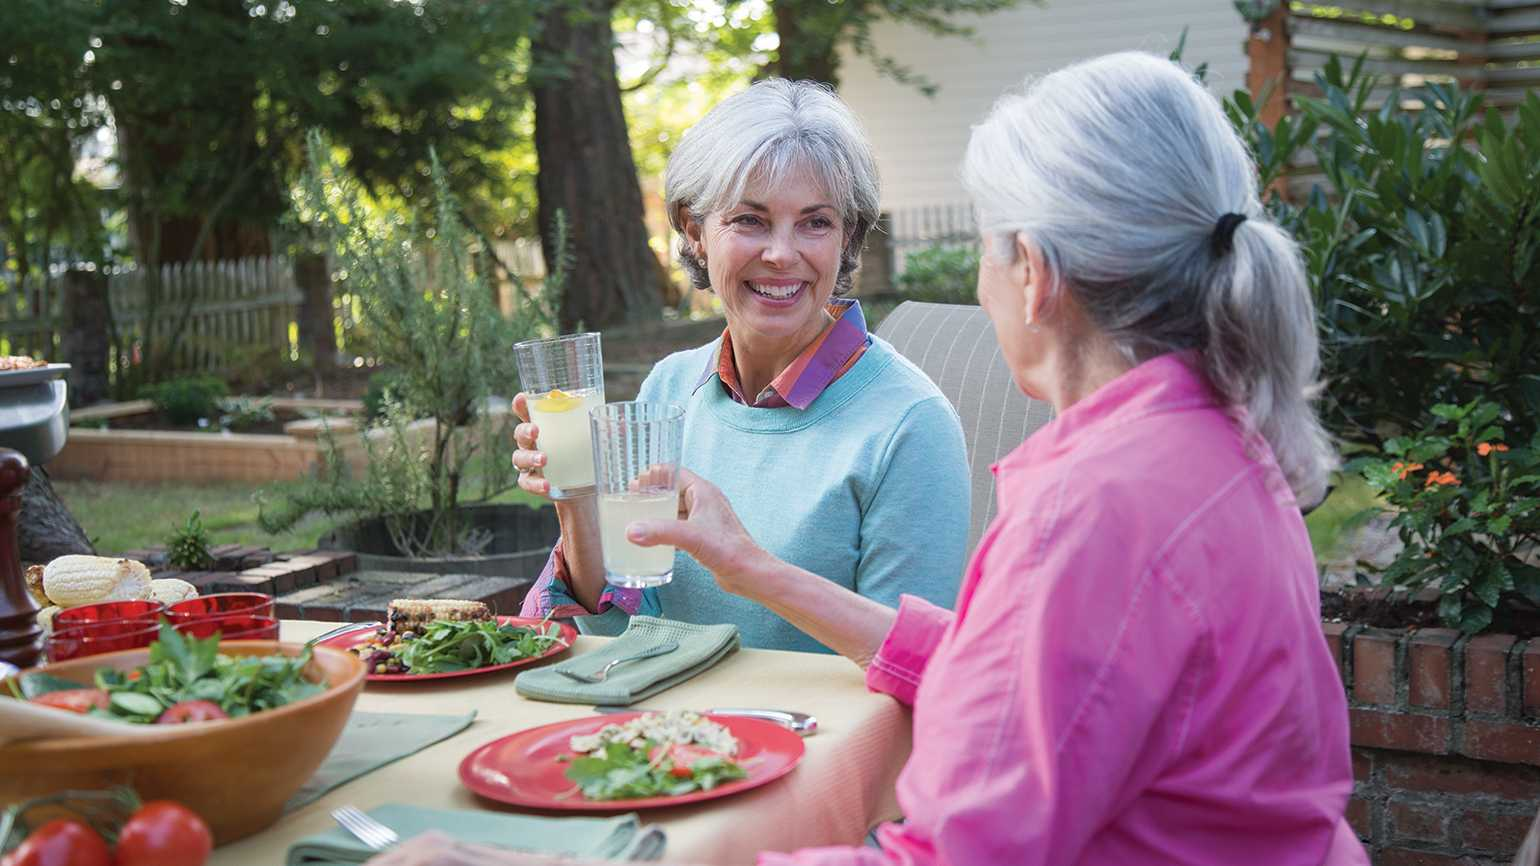 Two female friends enjoy a glass of lemonade together on a warm summer evening